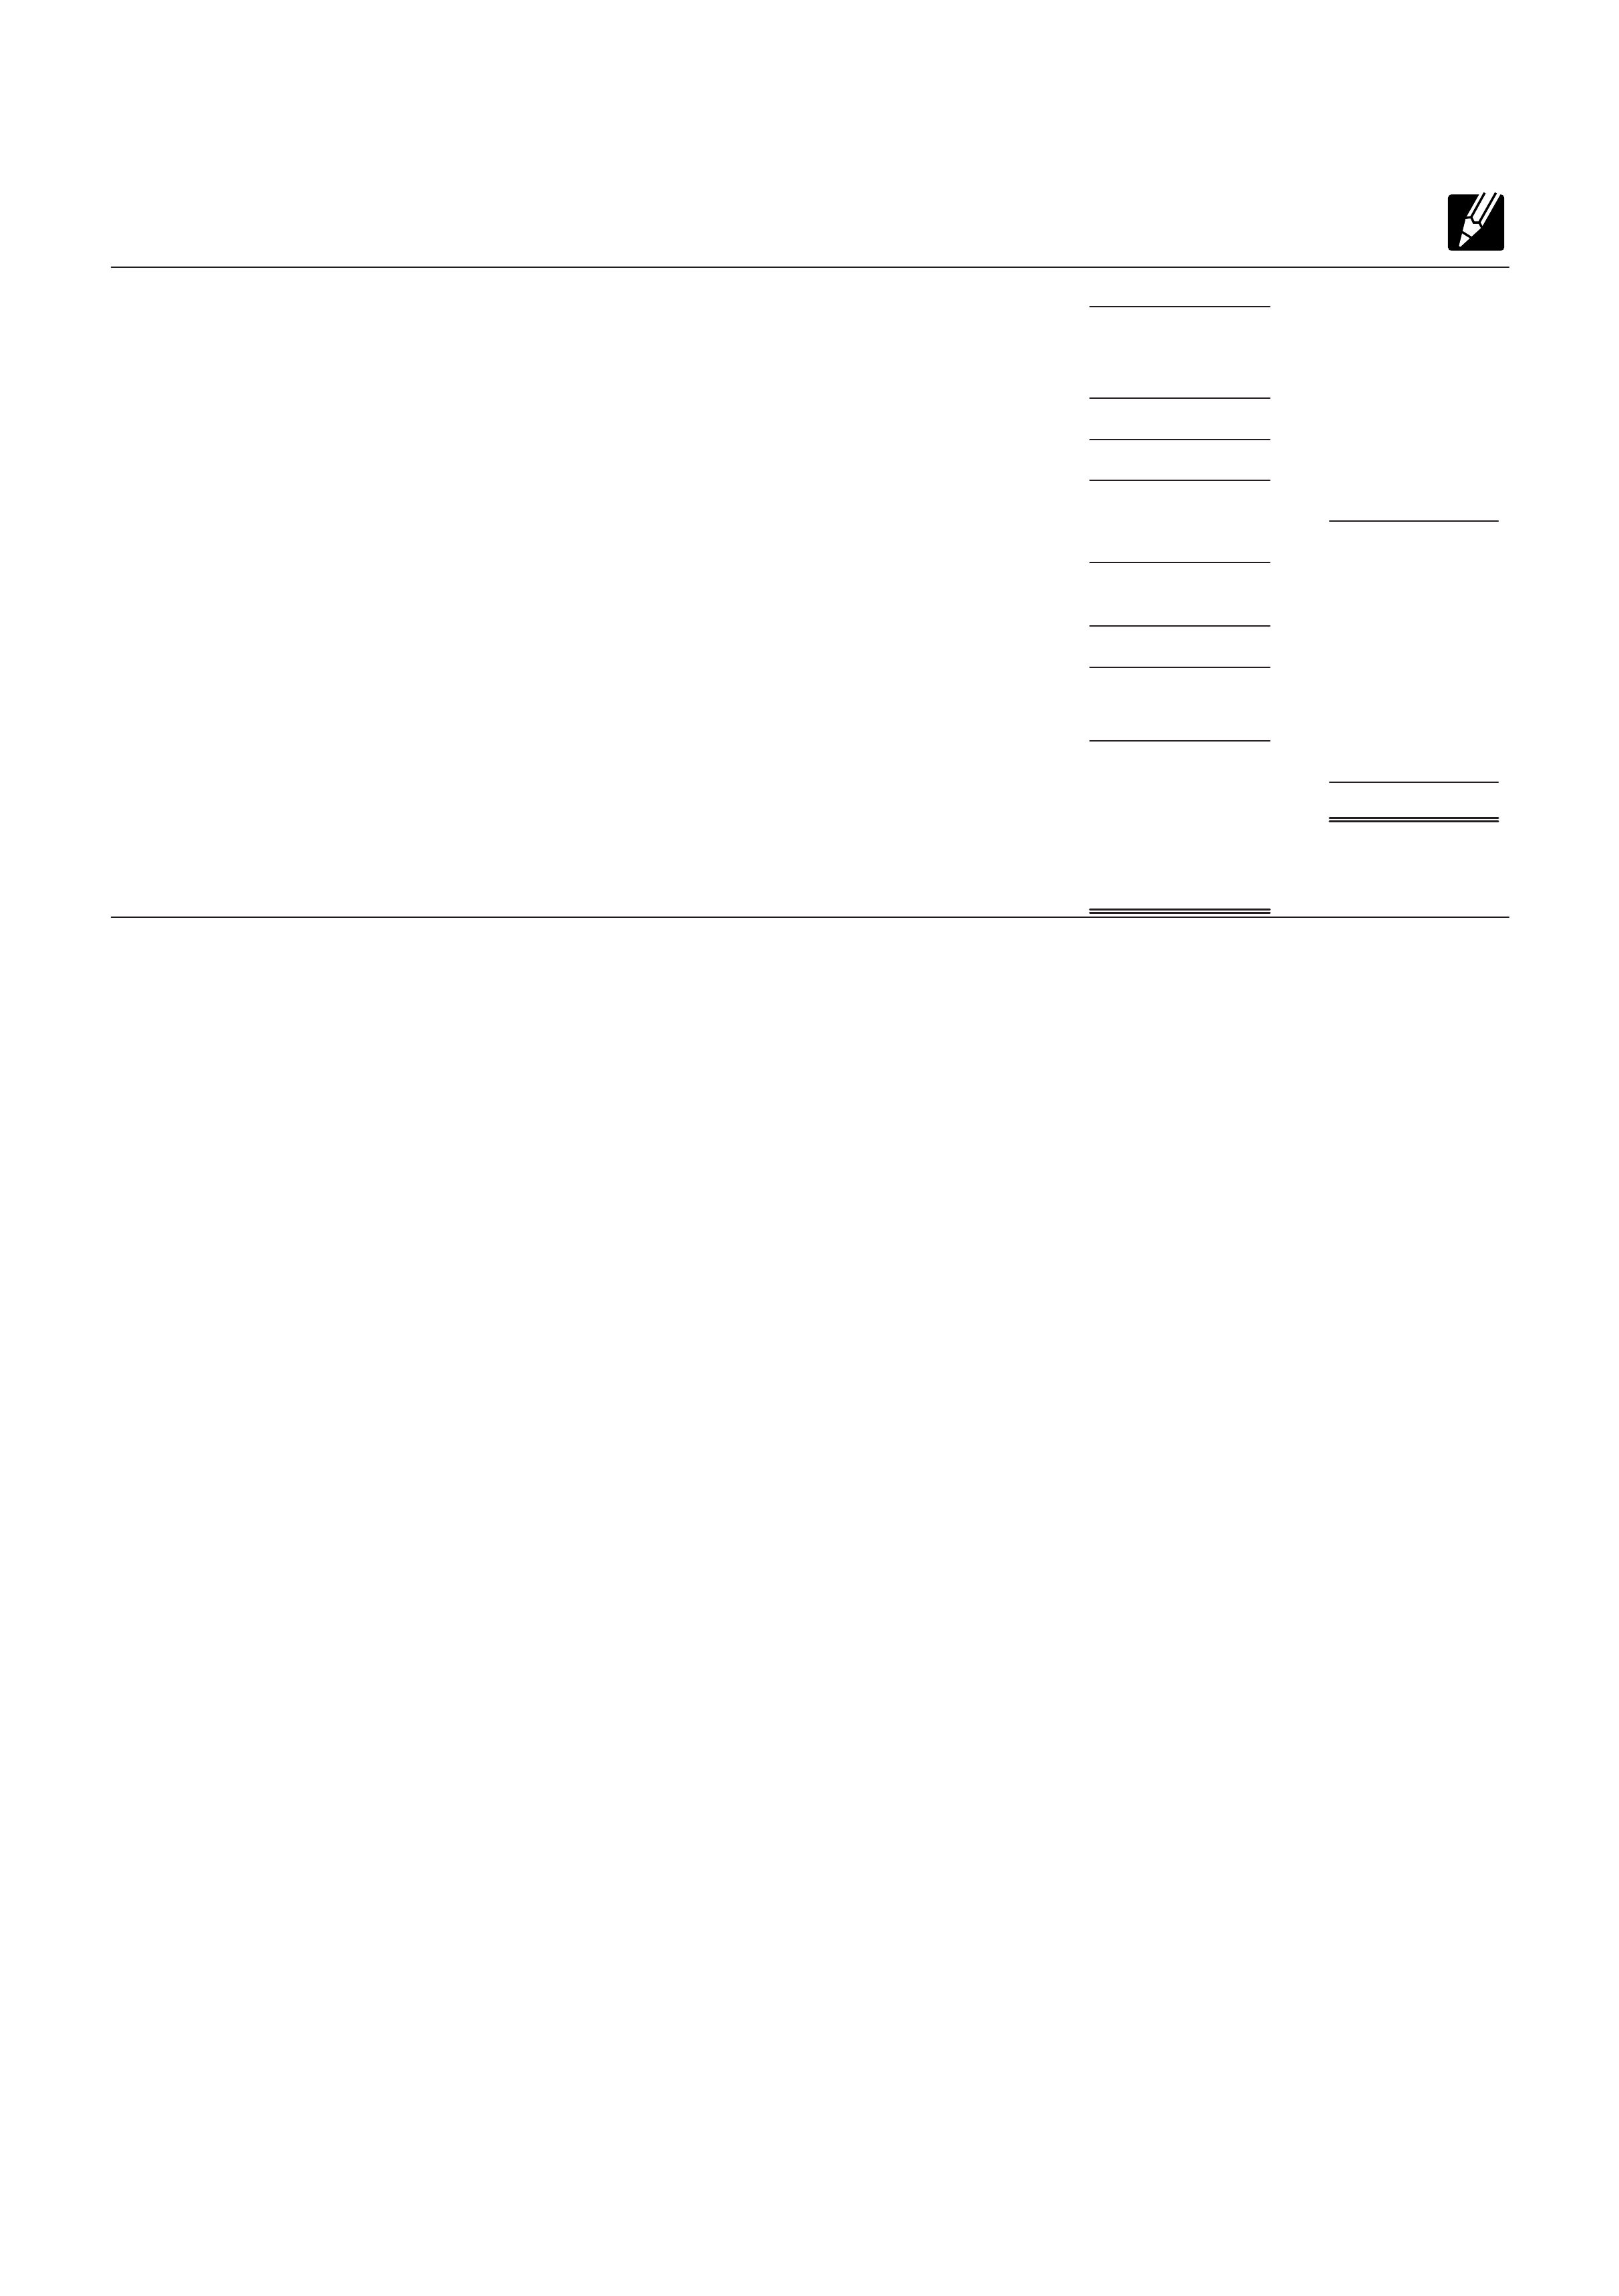 2015 form 1040 es estimated tax for individual free download falaconquin